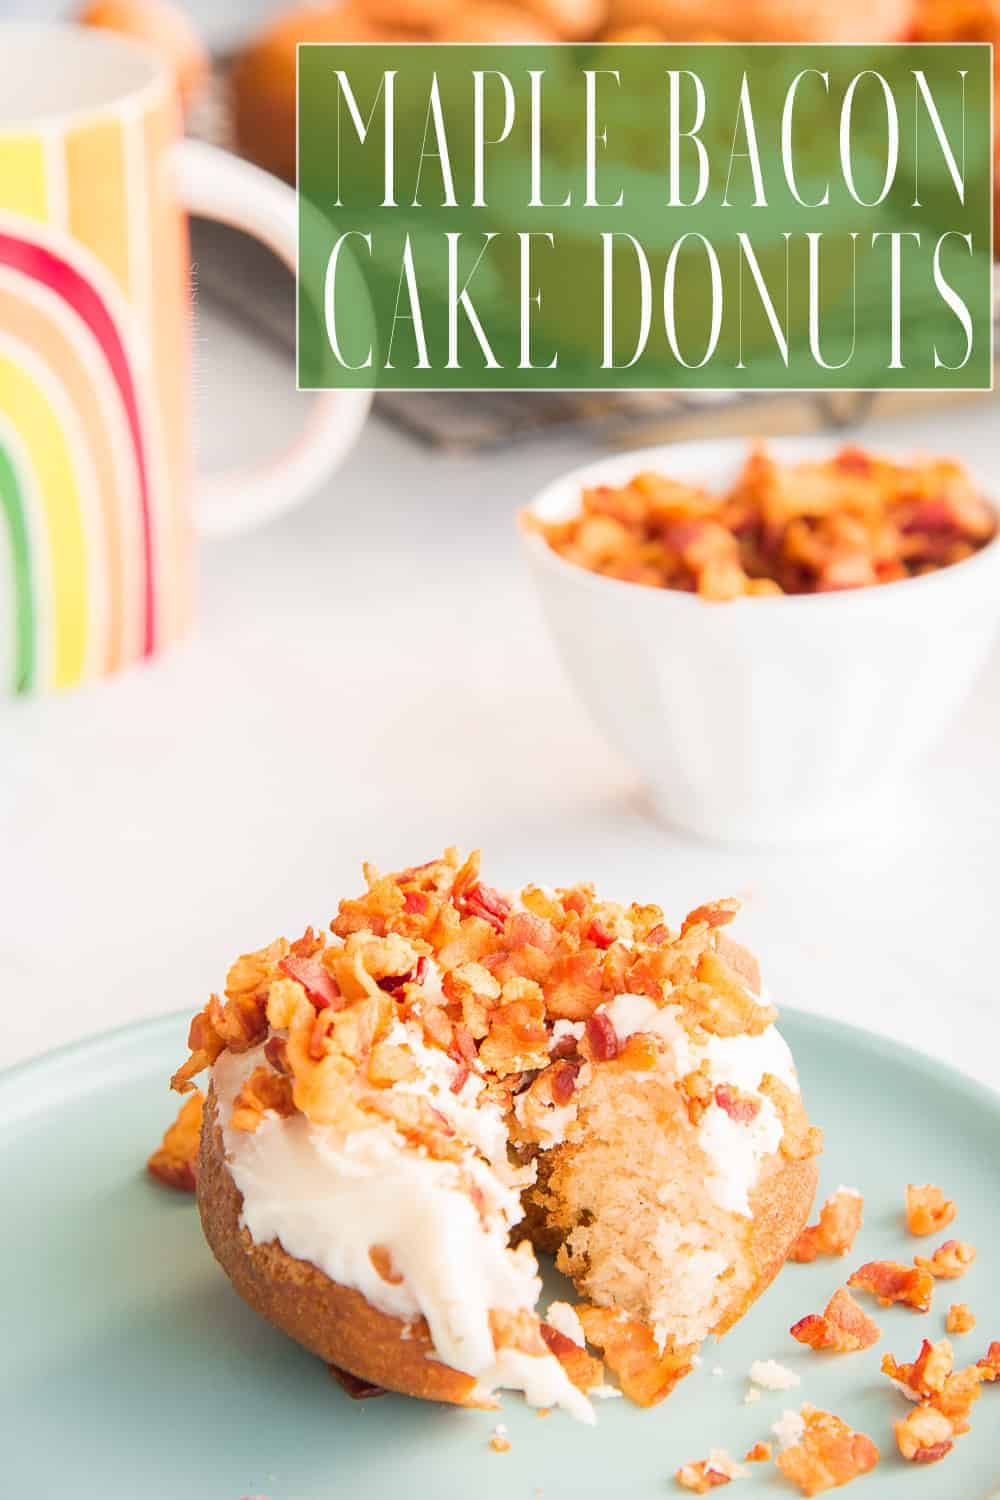 These easy-to-make Maple Bacon Cake Donuts will become your family's favorite breakfast, brunch. or dessert. Use homemade cake donuts by making my Easy Cake Donut recipe, or buy pre-made donuts. Either way you're bound to fall in love with these. #cakedonut #maplebacon #maplebacondonut #maplebaconcakedonuts #maplesyrup #bacon #breakfast #brunch #dessertdonuts #baking #frieddonuts #Thanksgiving #autumn #fall #holidaybreakfast via @ediblesense